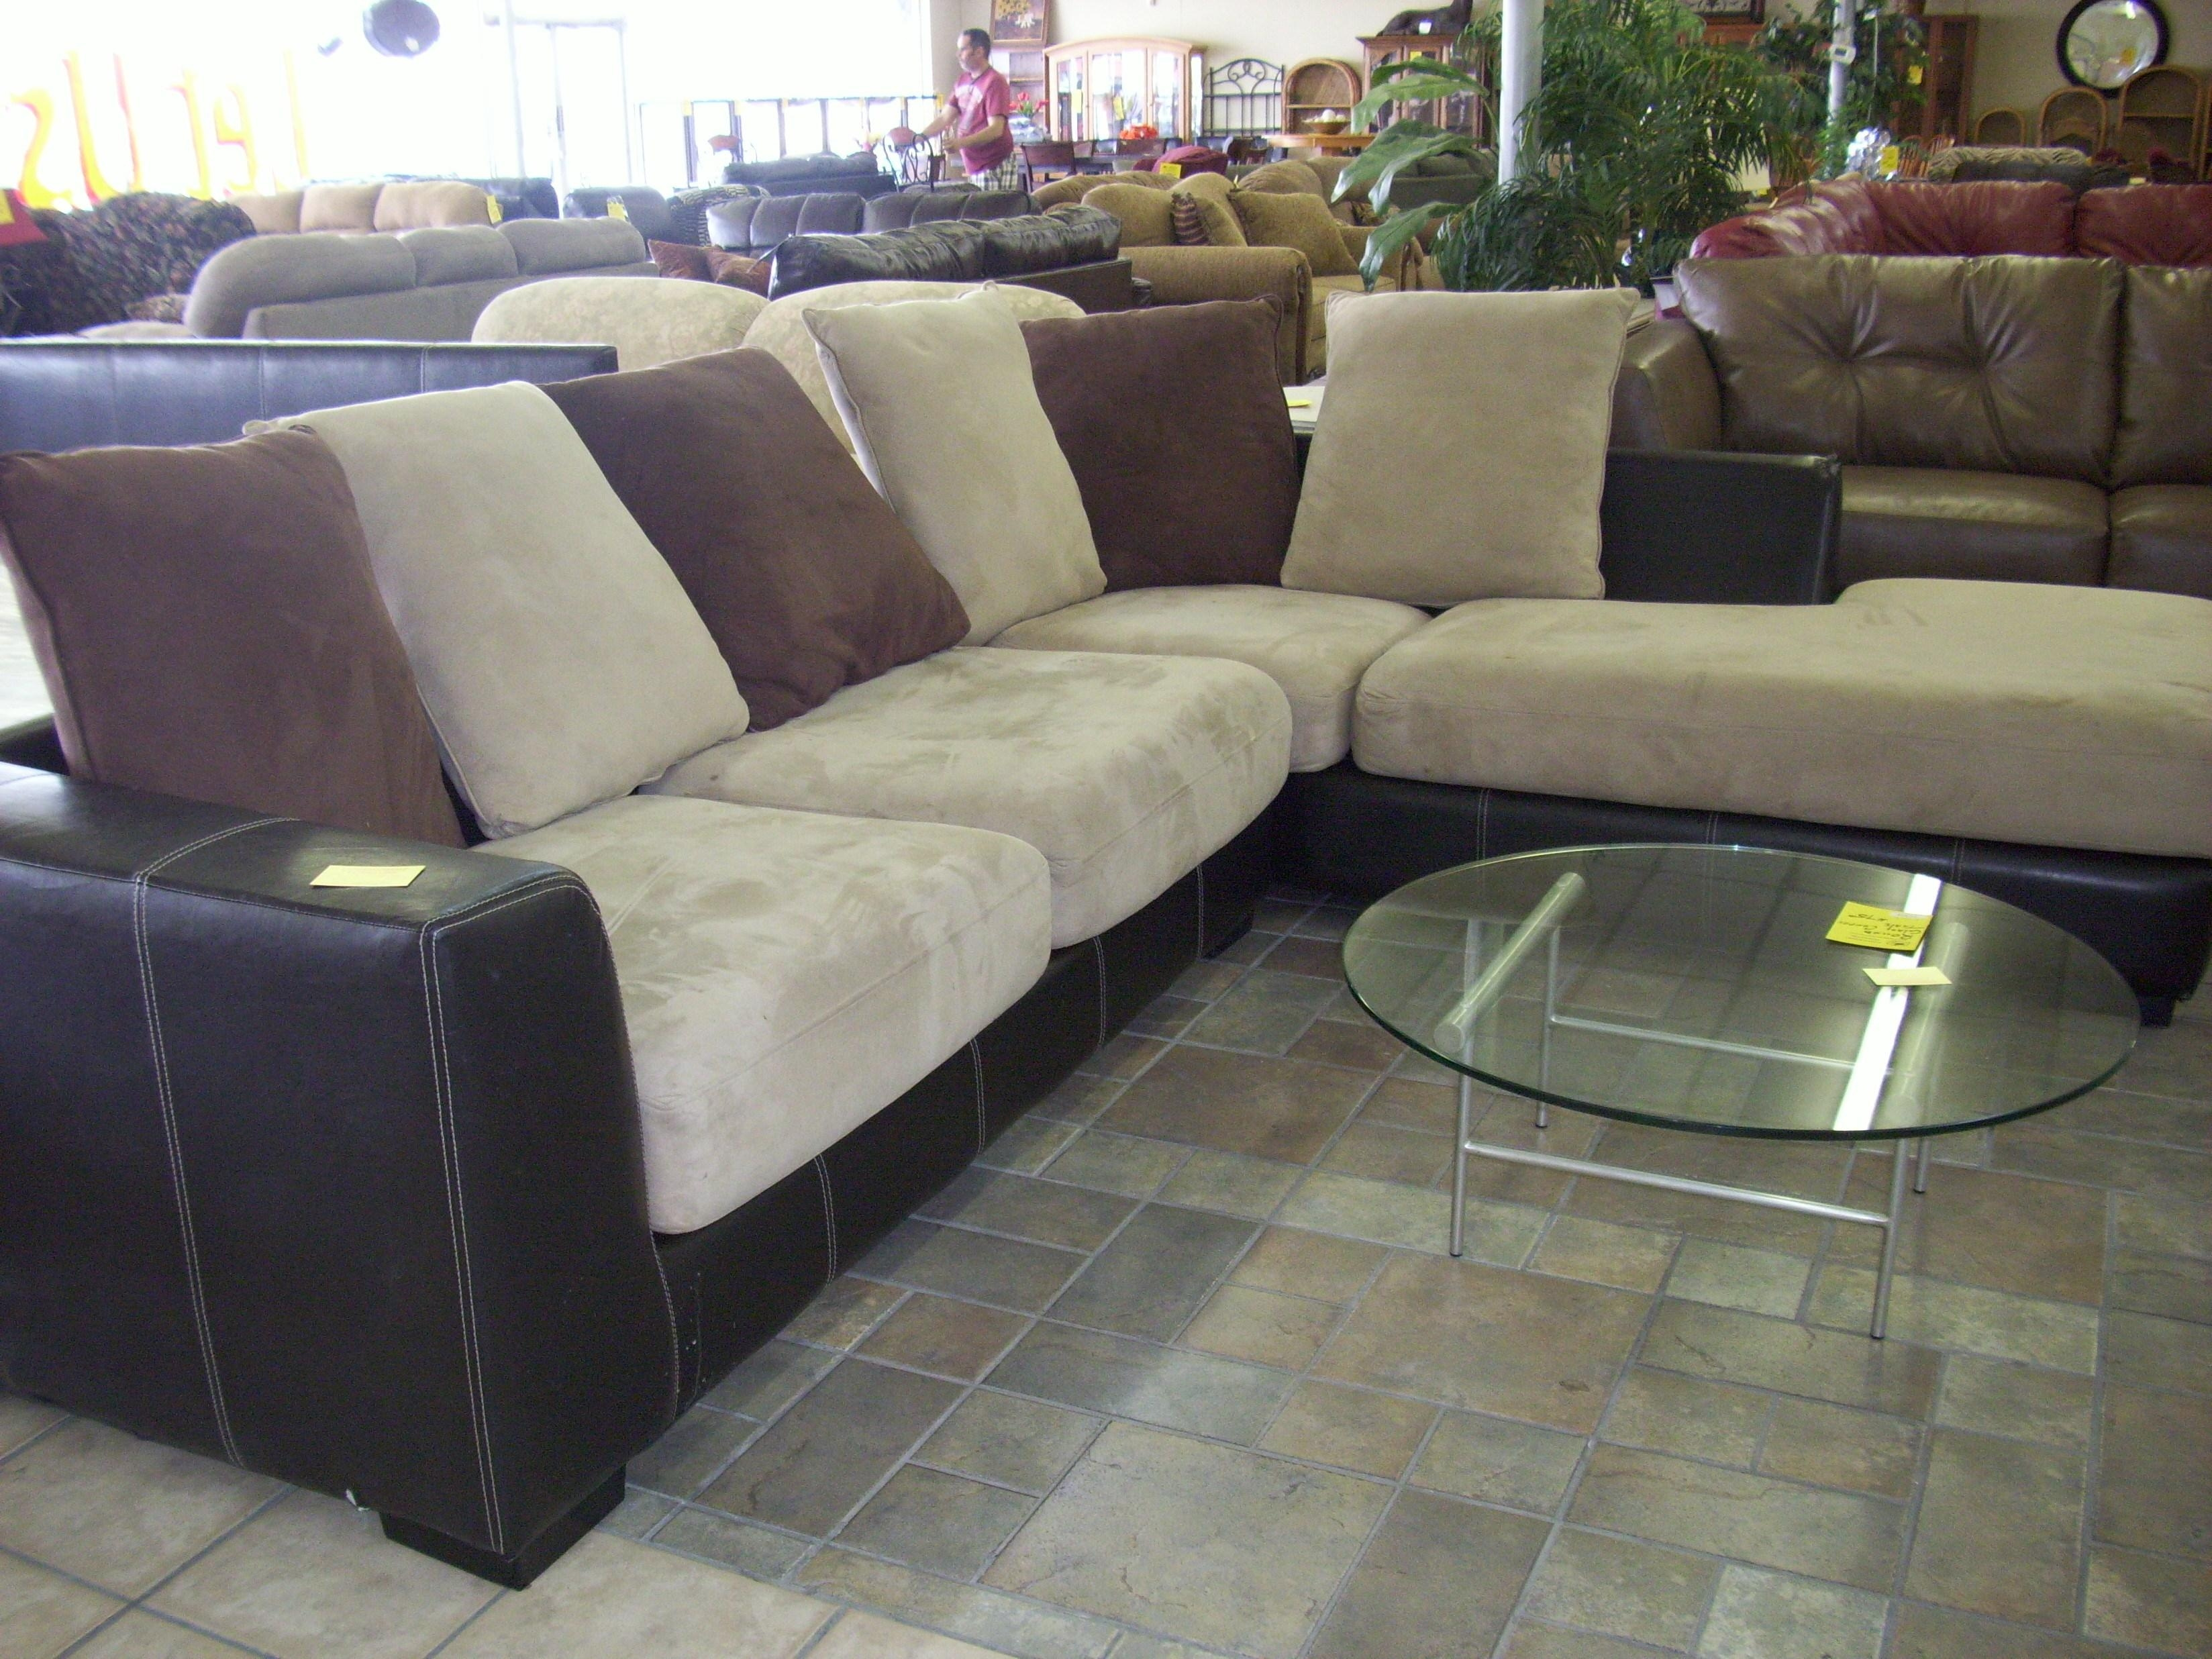 Furniture: Costco Sofa Bed | Target Futon | Euro Lounger In Euro Sofa Beds (Image 10 of 20)